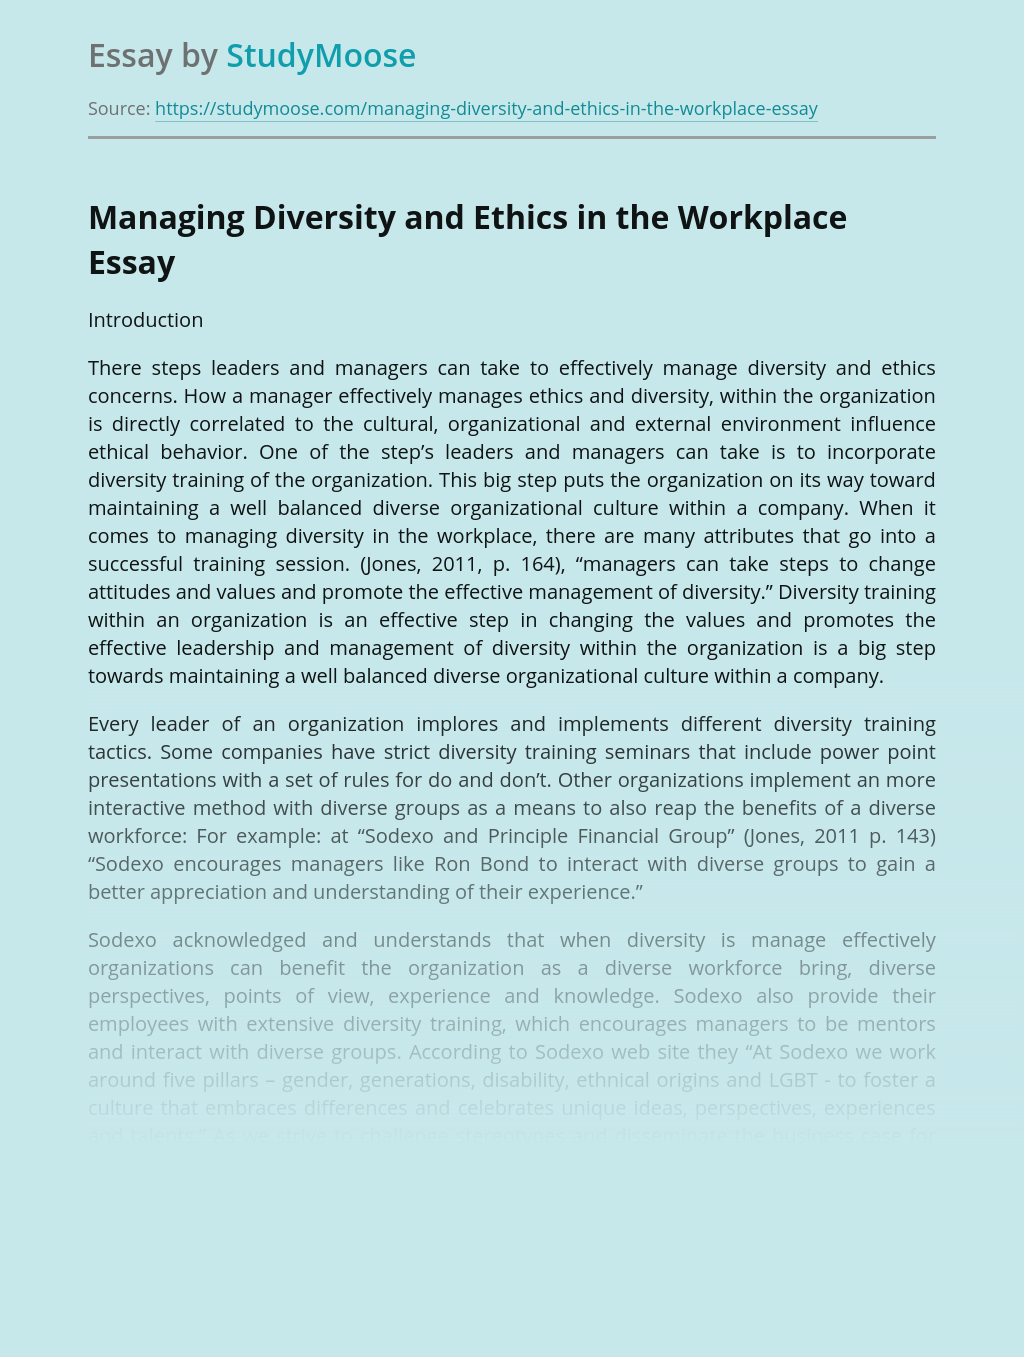 Managing Diversity and Ethics in the Workplace